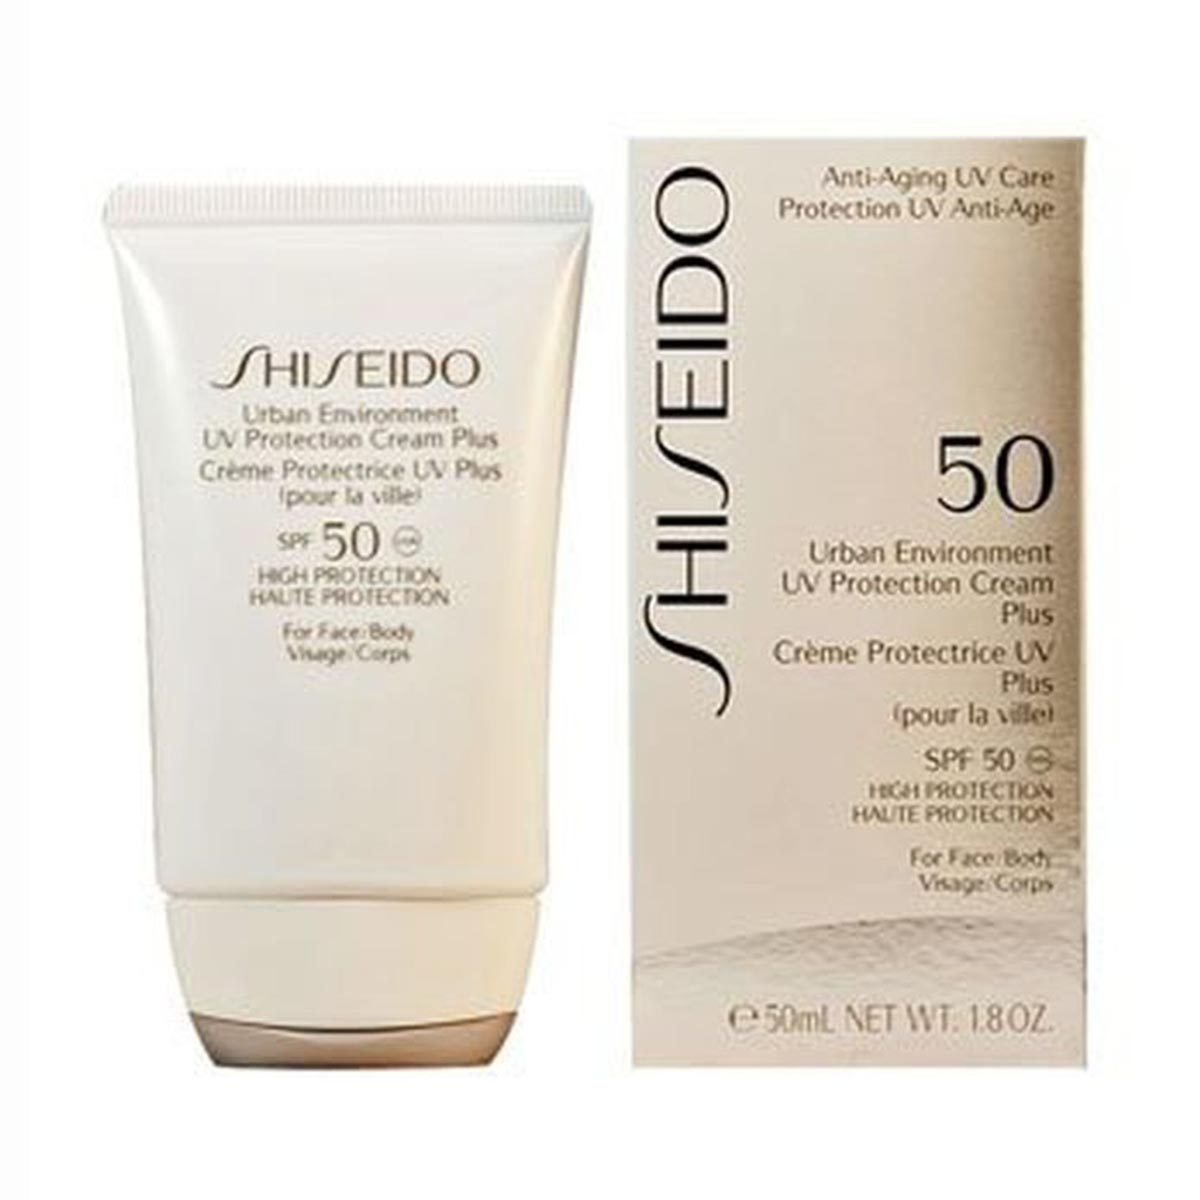 Shiseido urban environment uv protect plus spf50 50ml